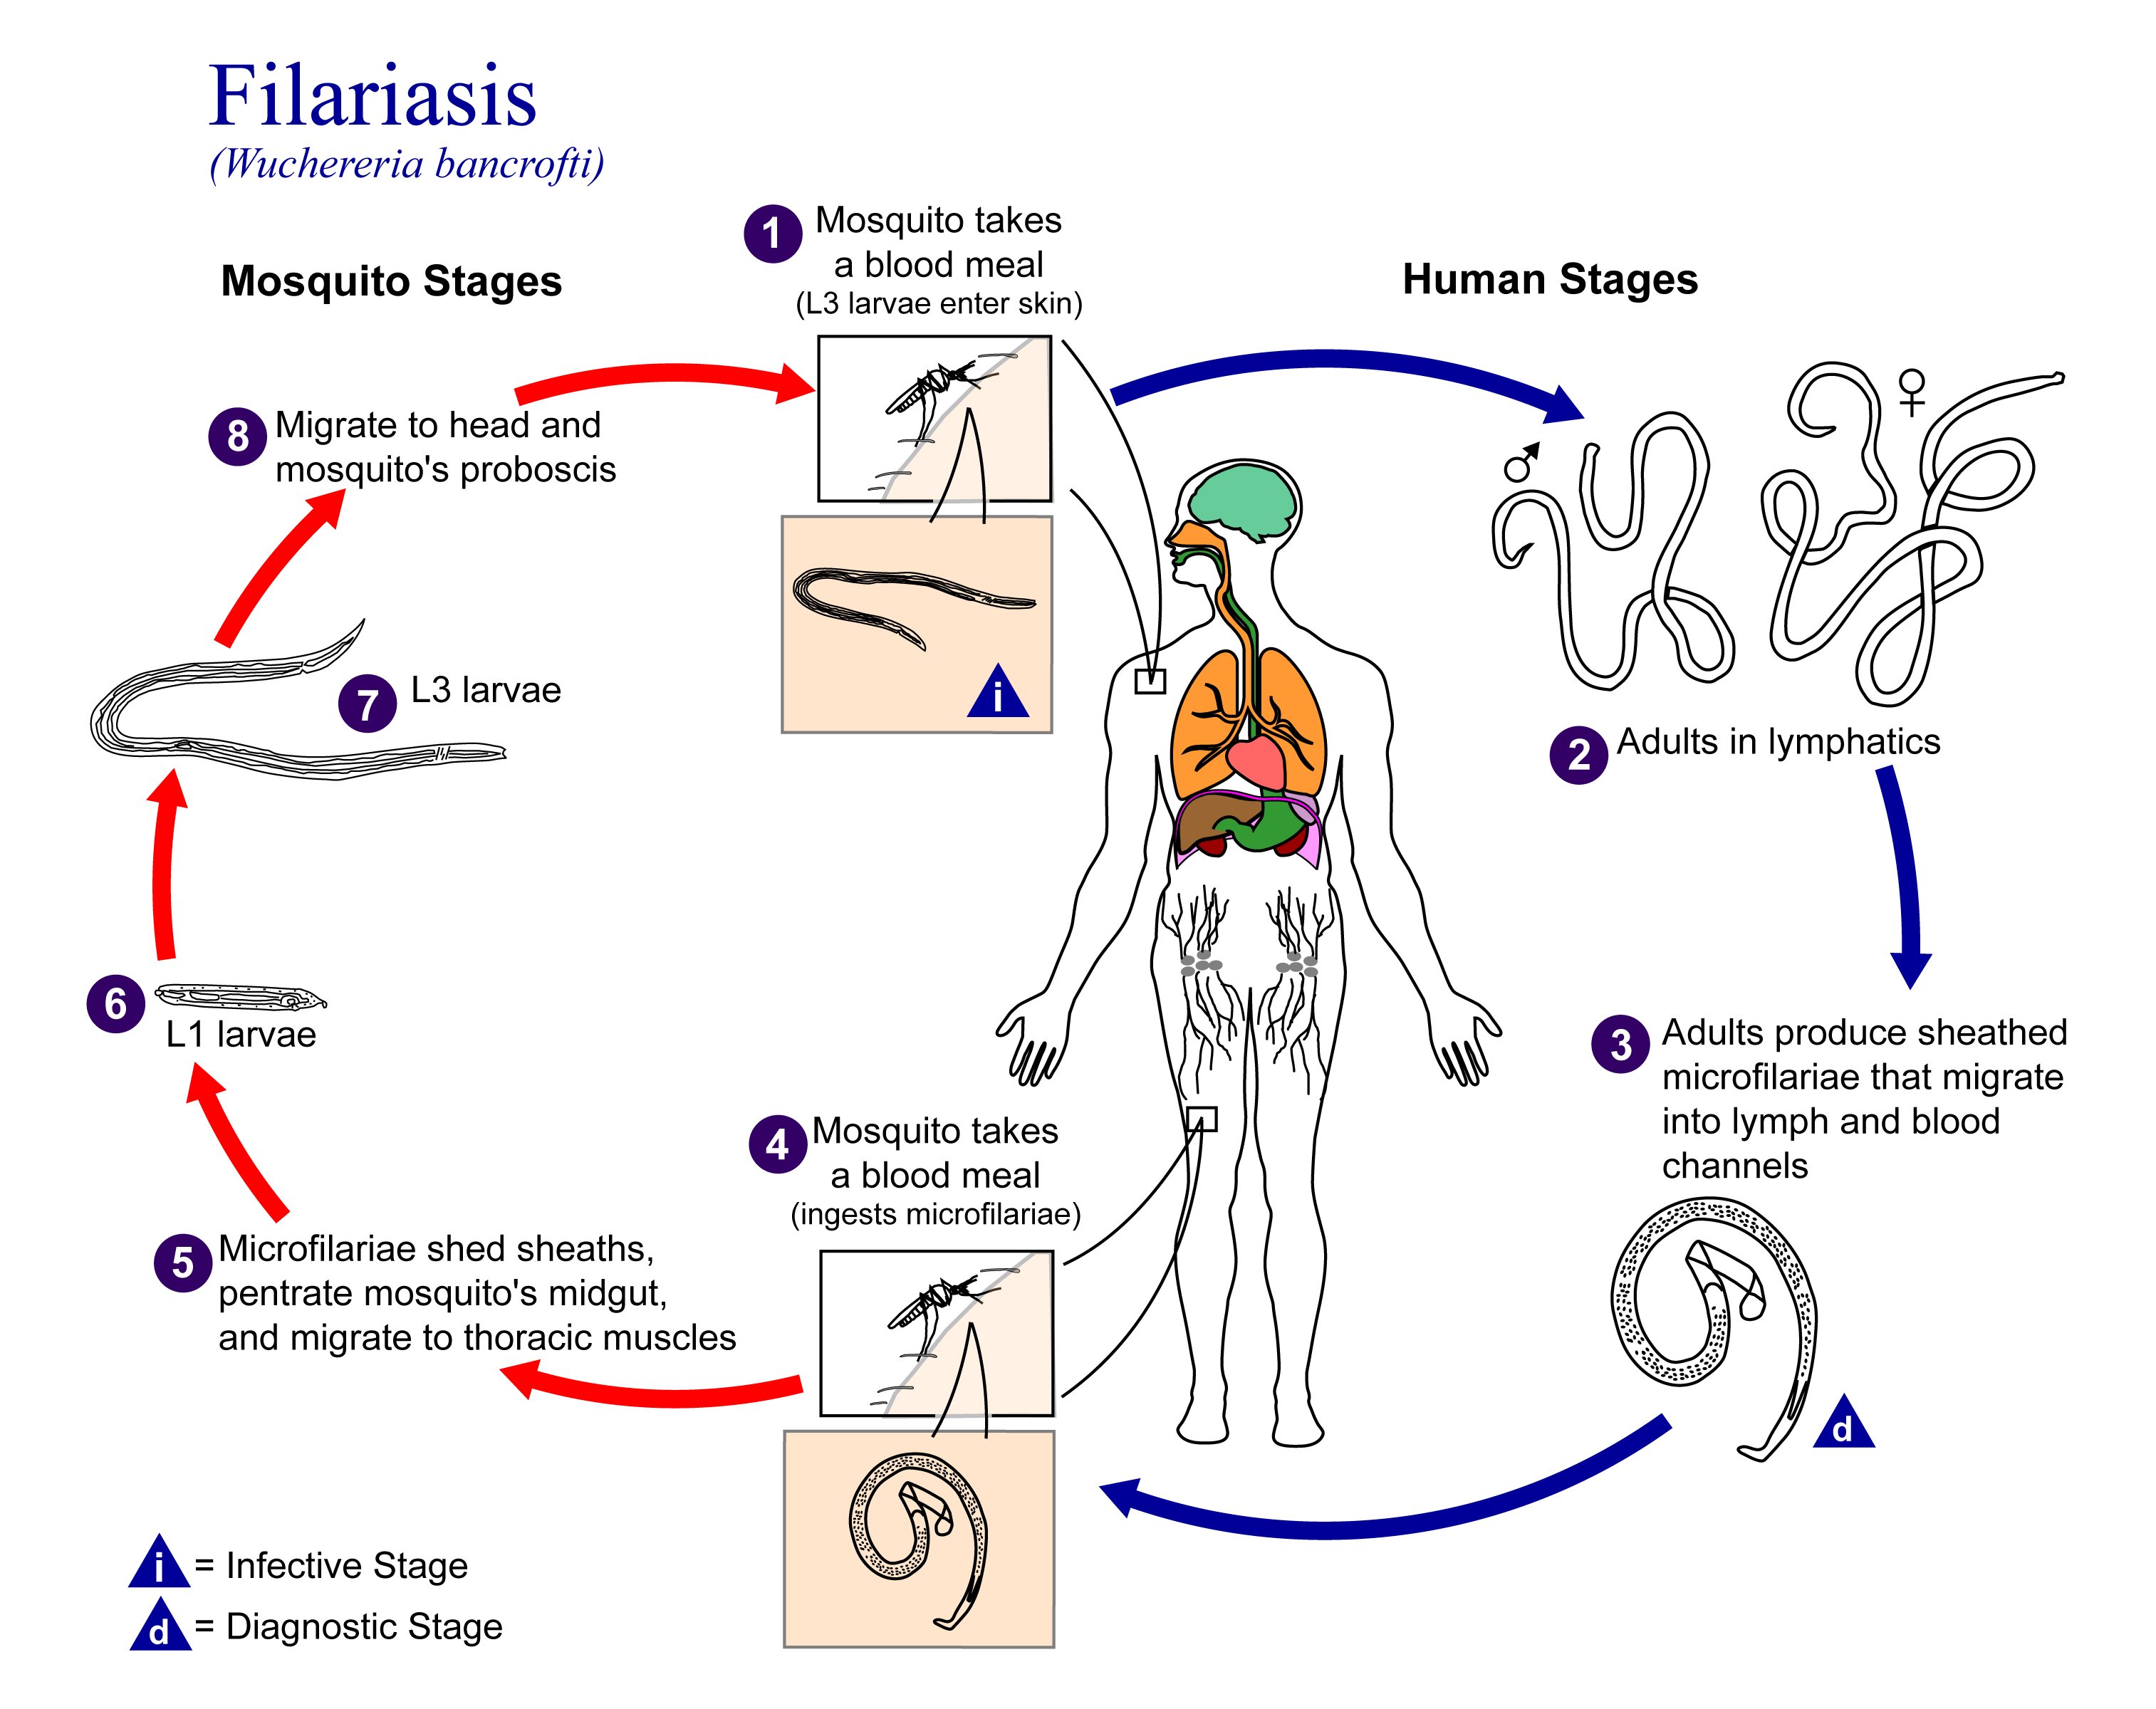 Life Cycle of Lymphatic Filariasis